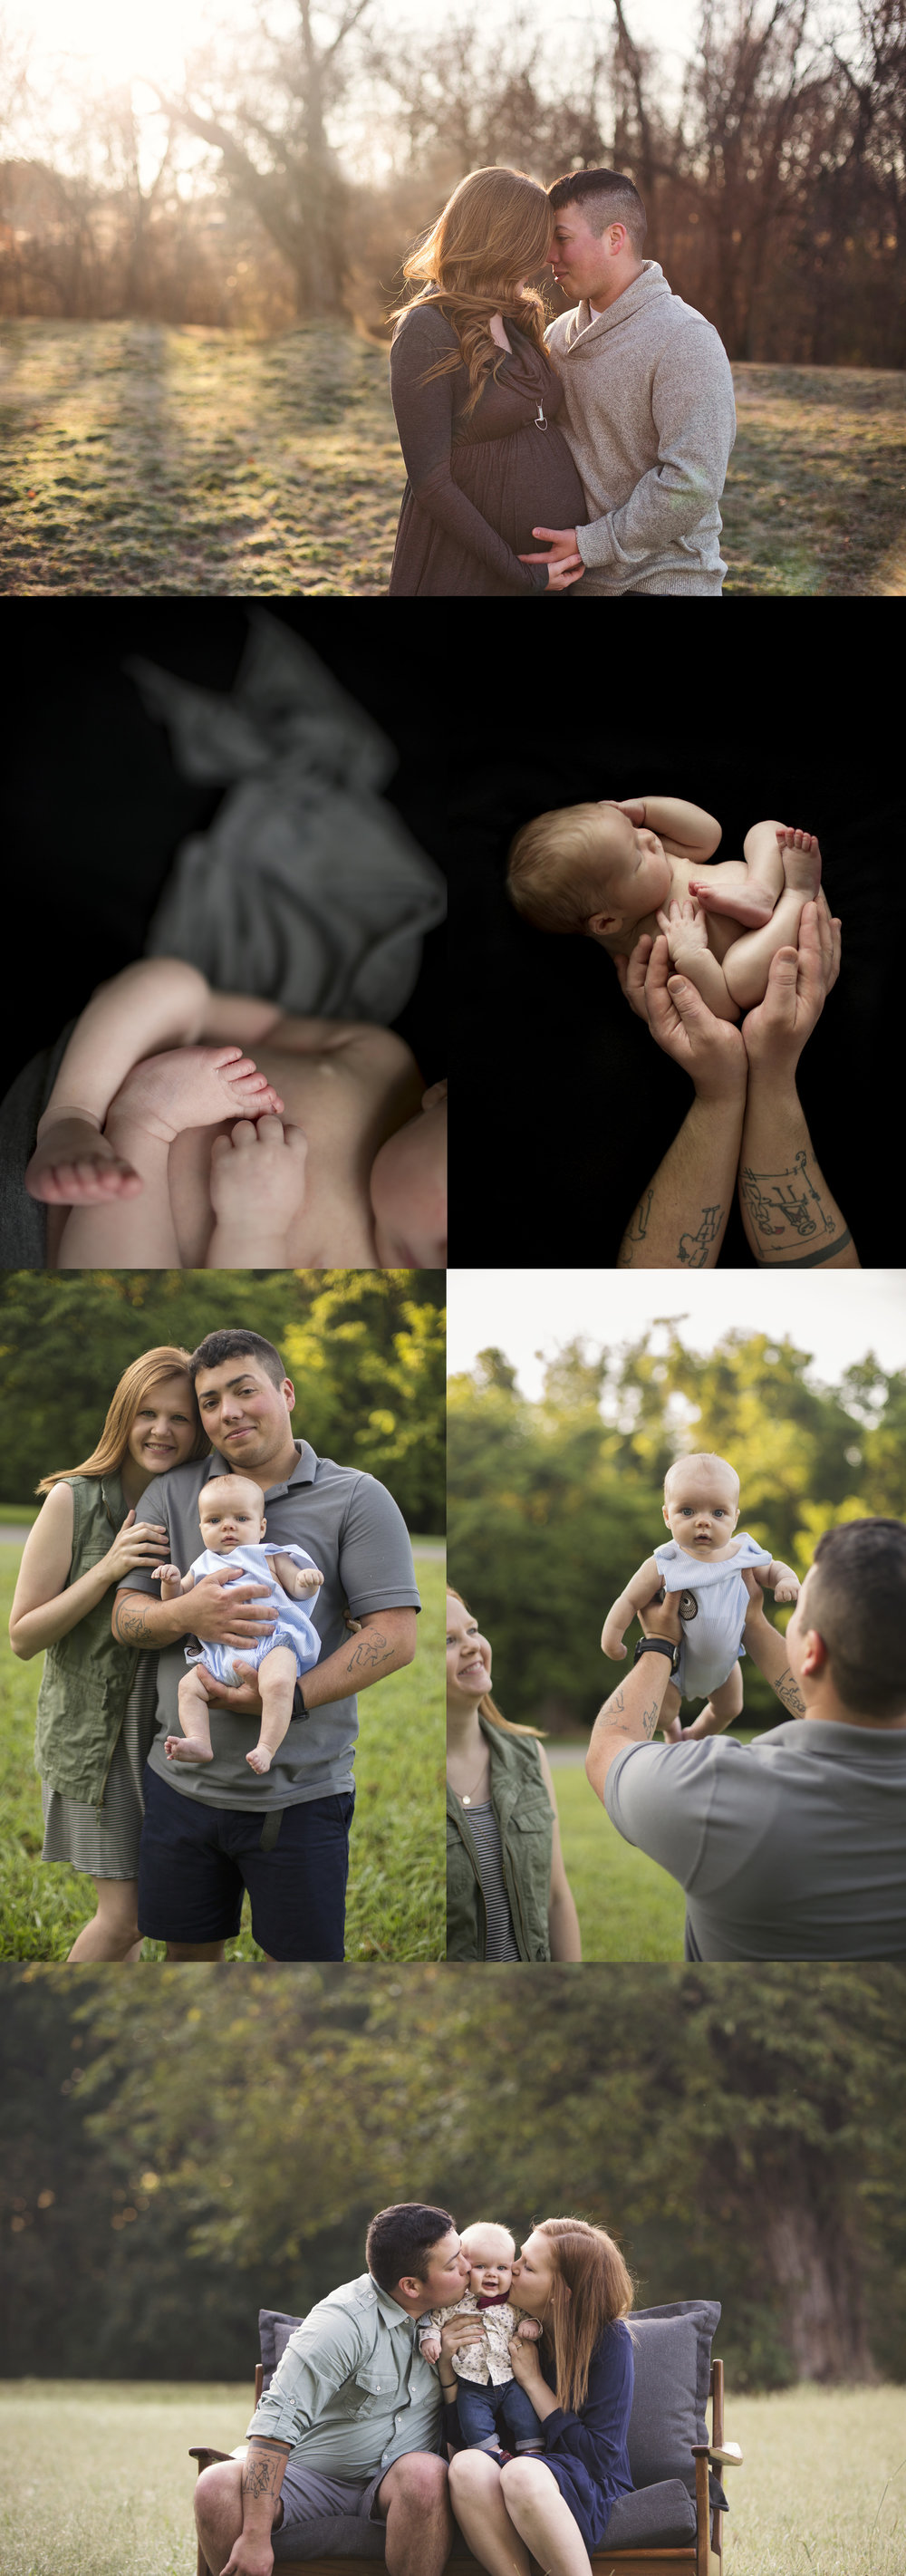 northwest-arkansas-rogers-bentonville-maternity-newborn-first-year-birthday-milestone-photo-session-sunny-skaggs-photography.jpg